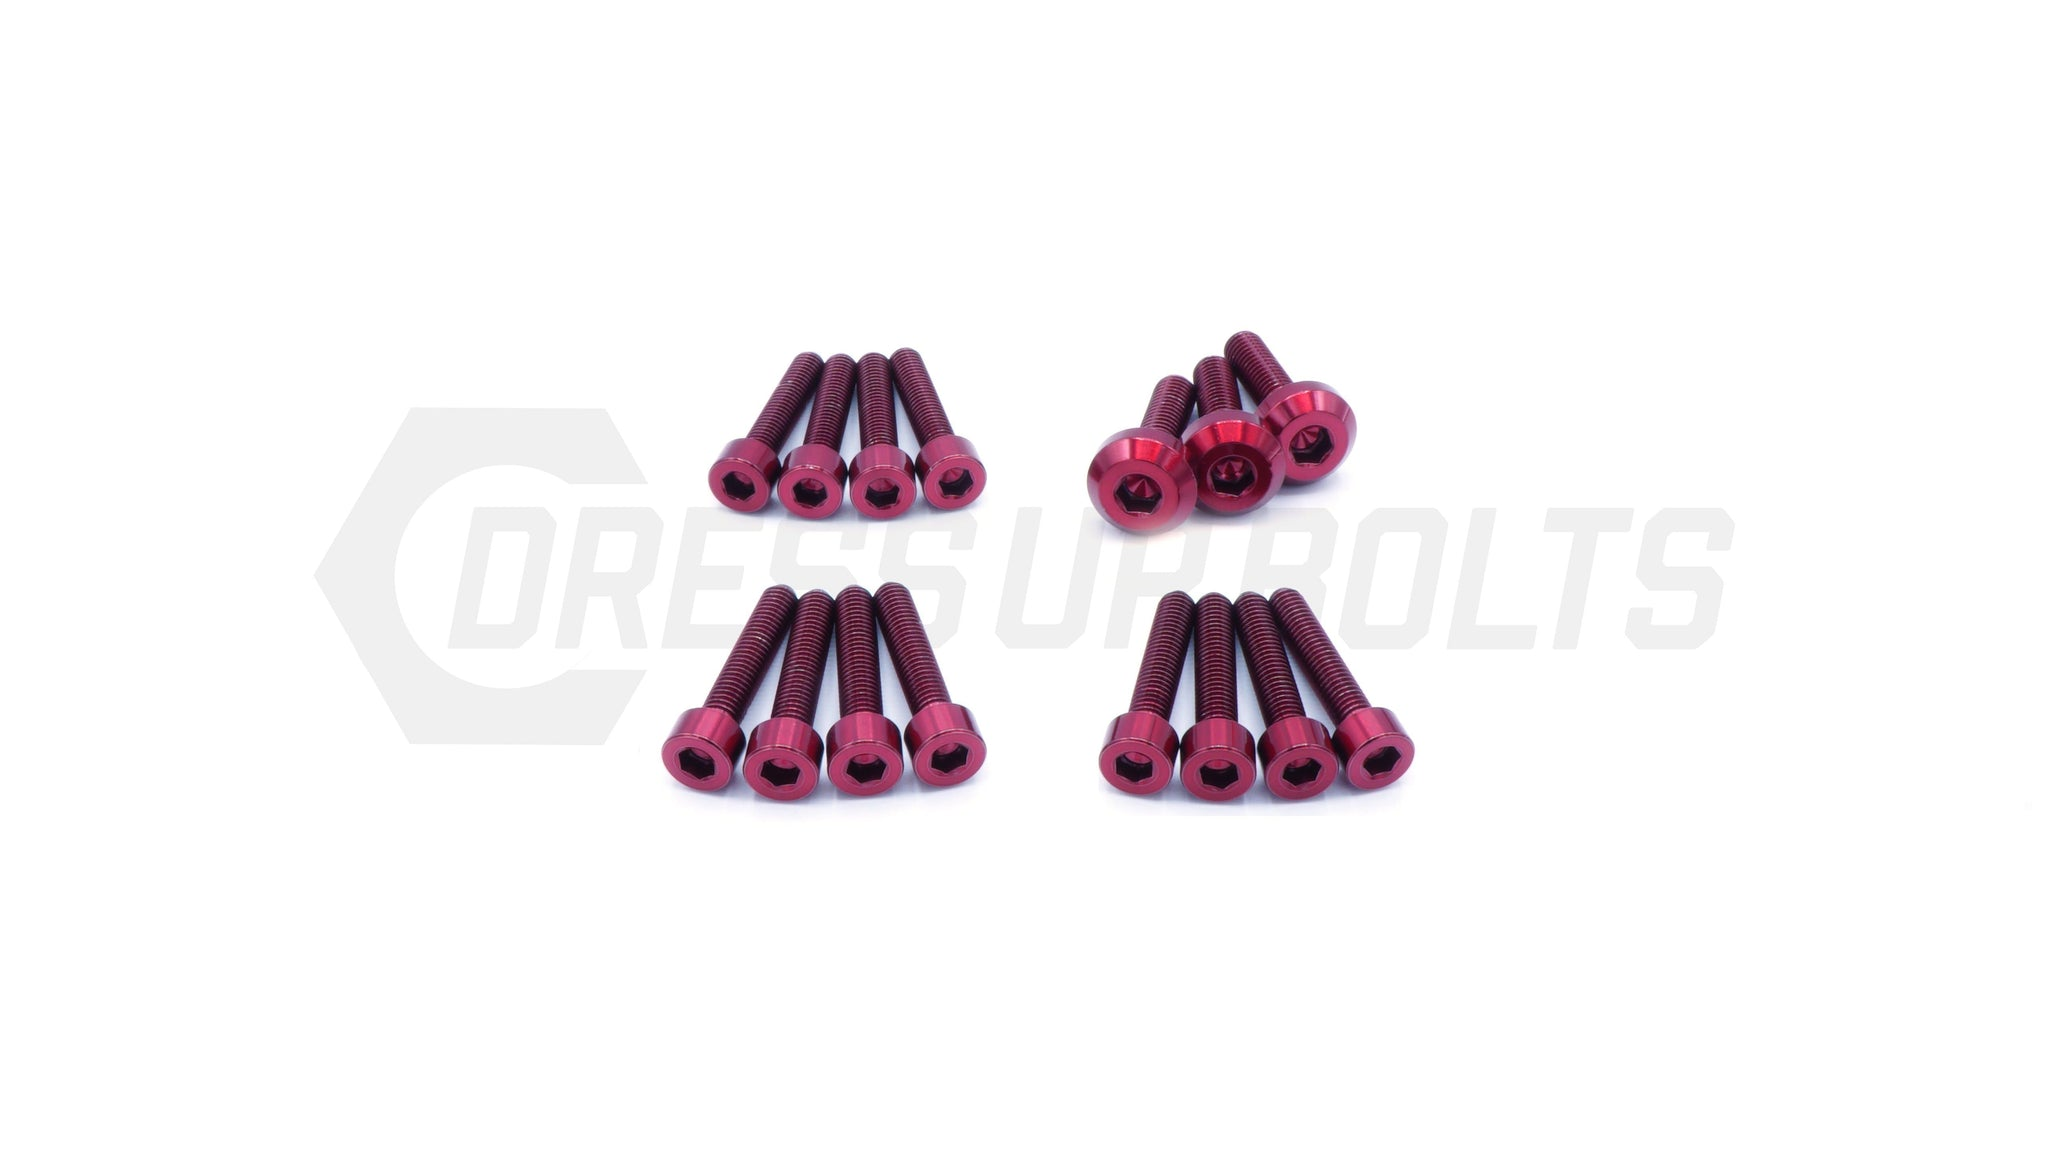 Nissan RB26 Titanium Dress Up Bolts Partial Engine Cover Kit - DressUpBolts.com